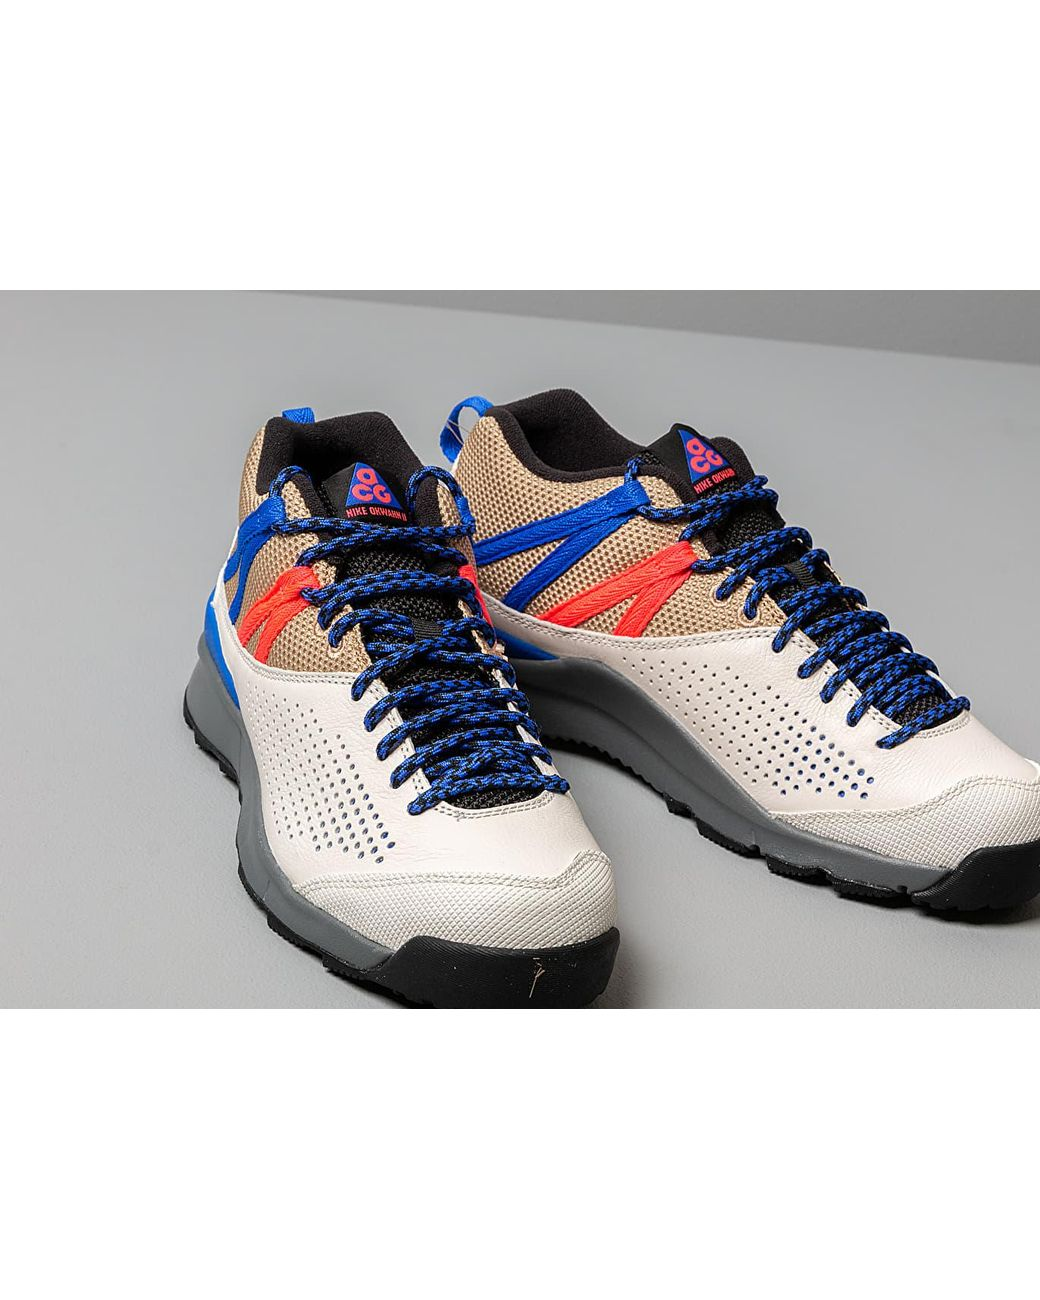 official photos 9e2de d6220 Lyst - Nike Okwahn Ii Sail  Racer Blue-racer Pink-desert in Brown for Men